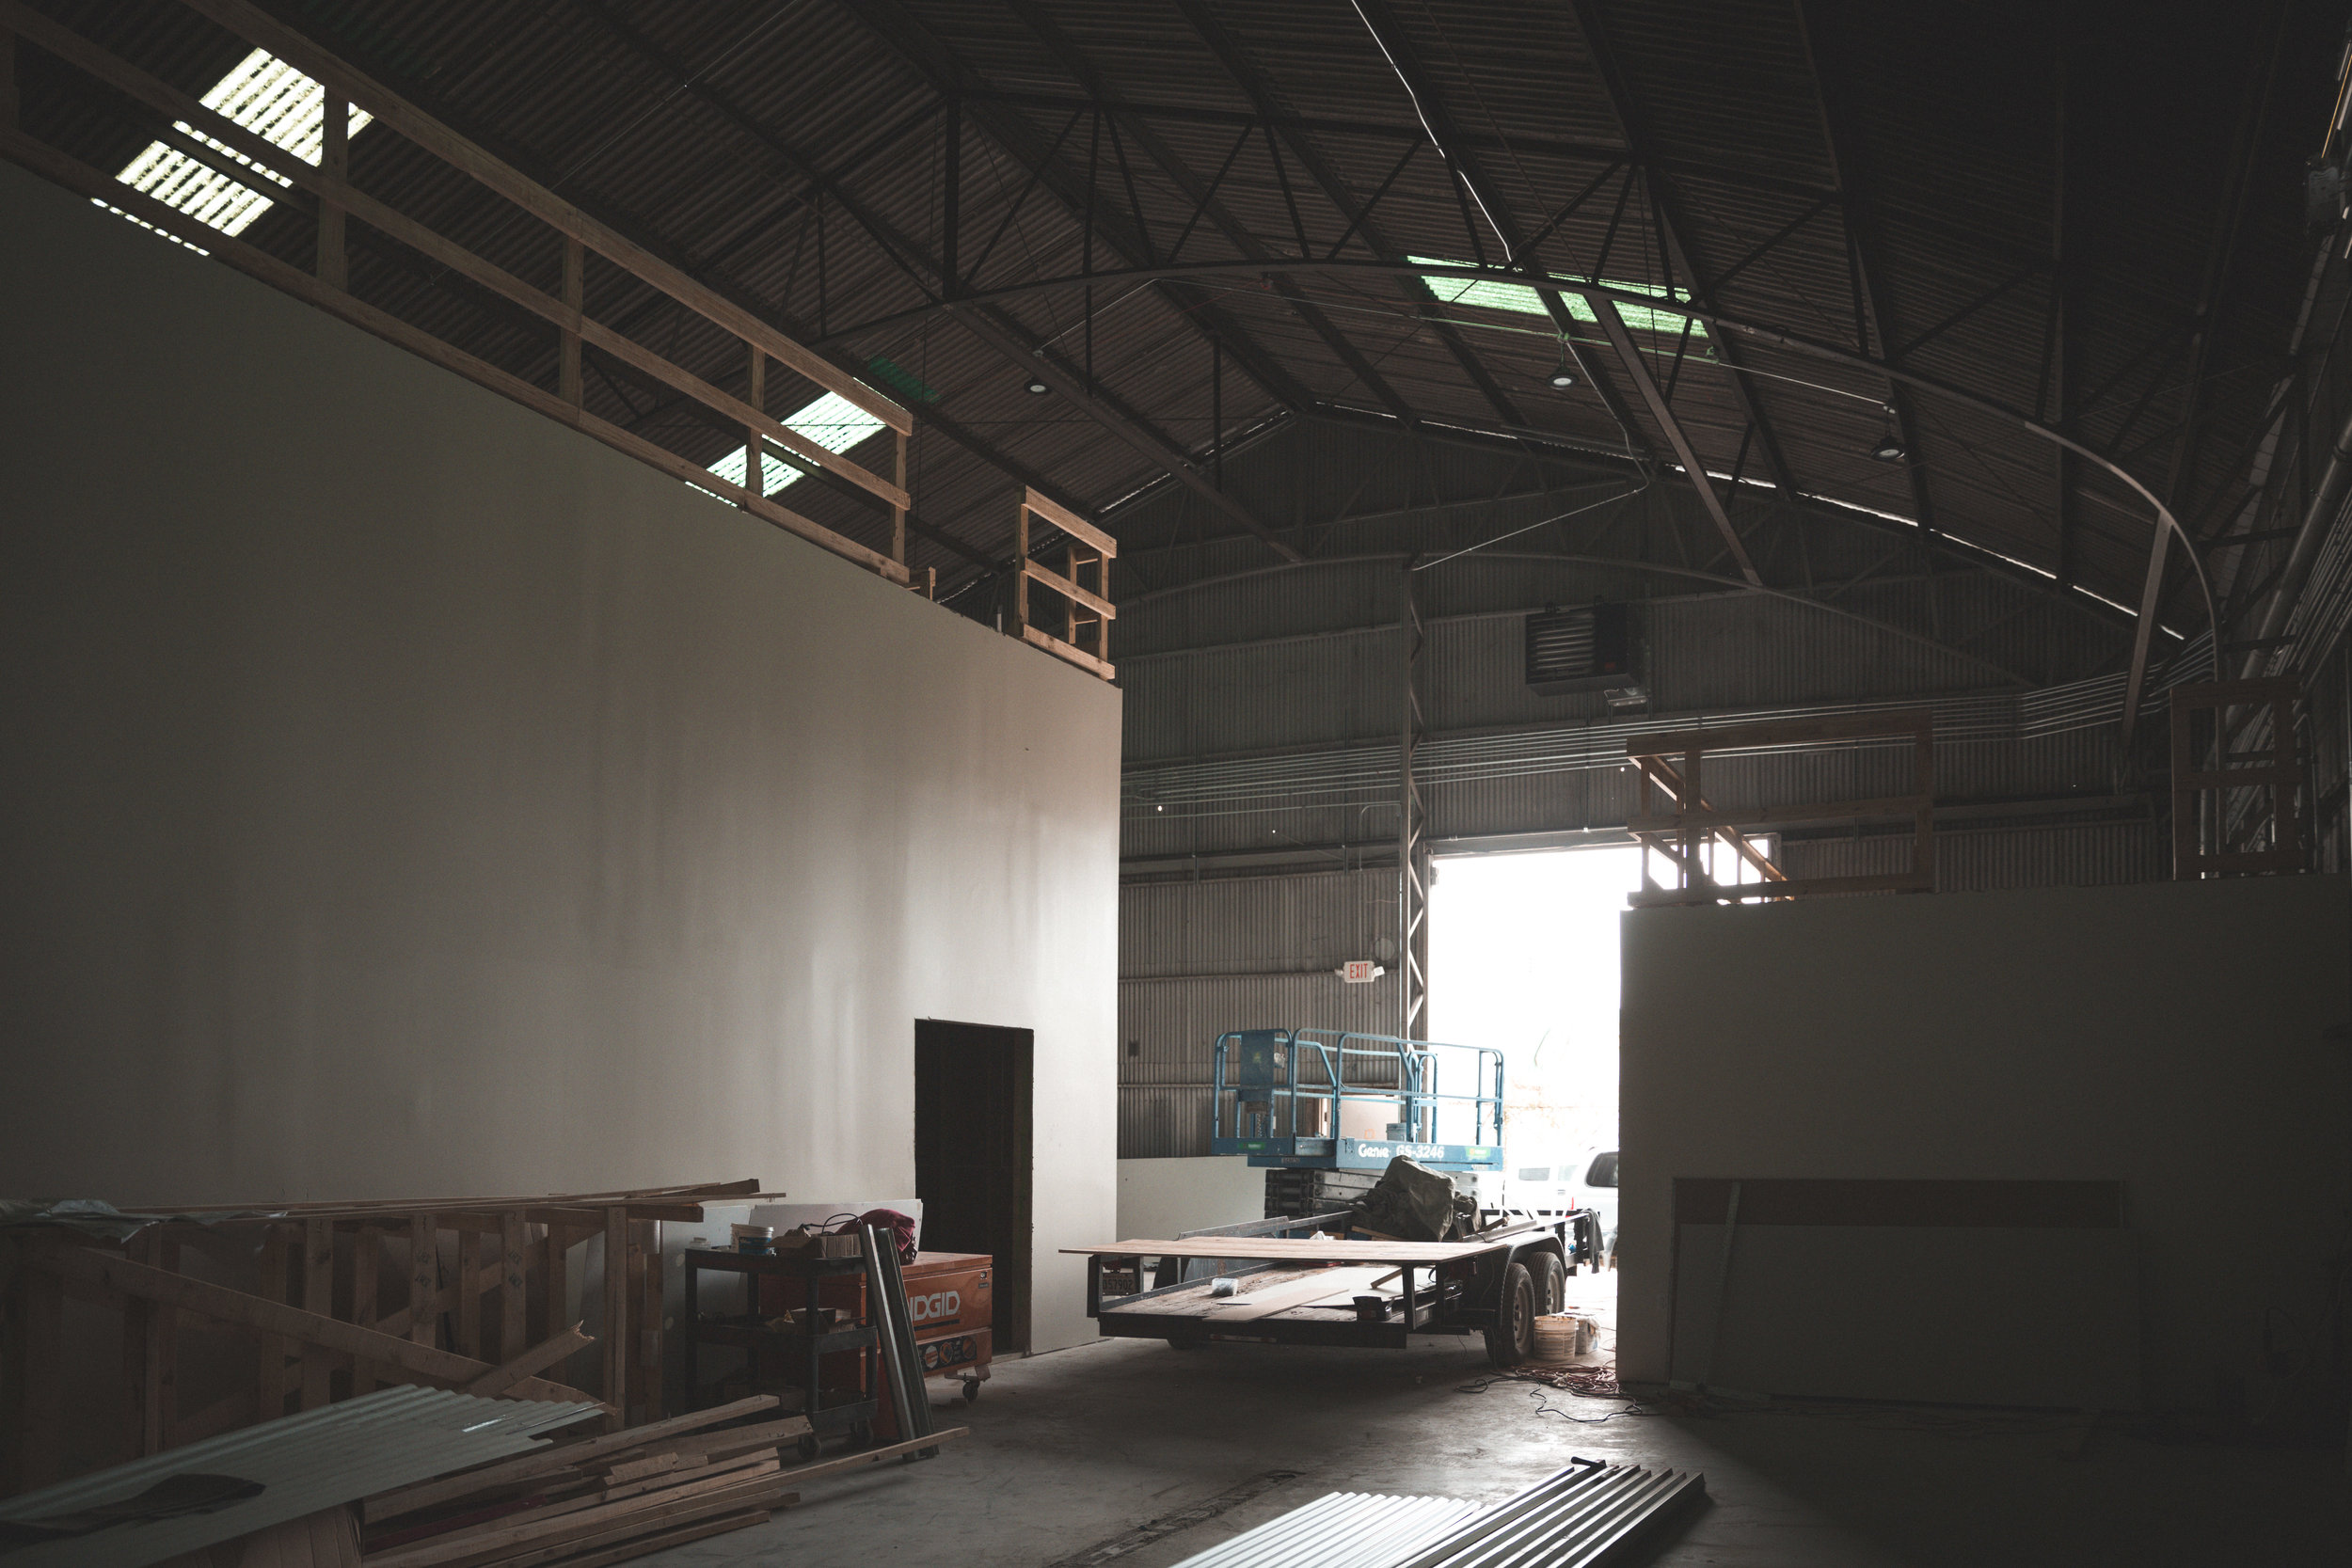 Miel Brewery_Under Construction_Painting Building_3.jpg